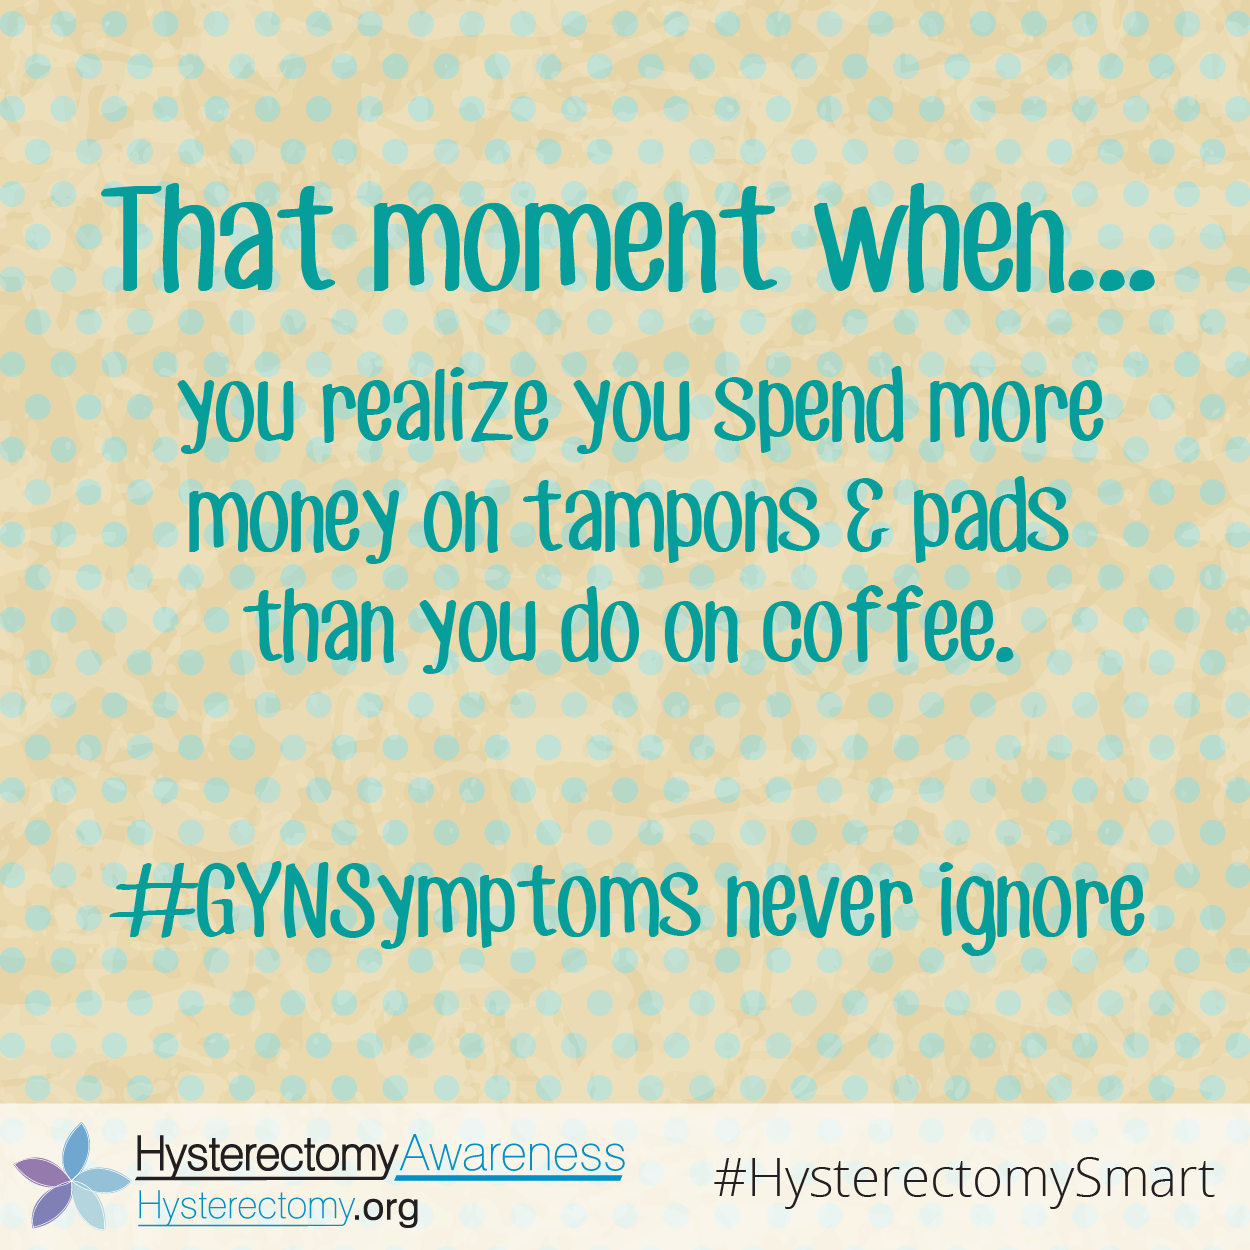 That moment when you realize you spend more money on tampons & pads than you do on coffee. #GYNSymptoms never ignore #HysterectomySmart